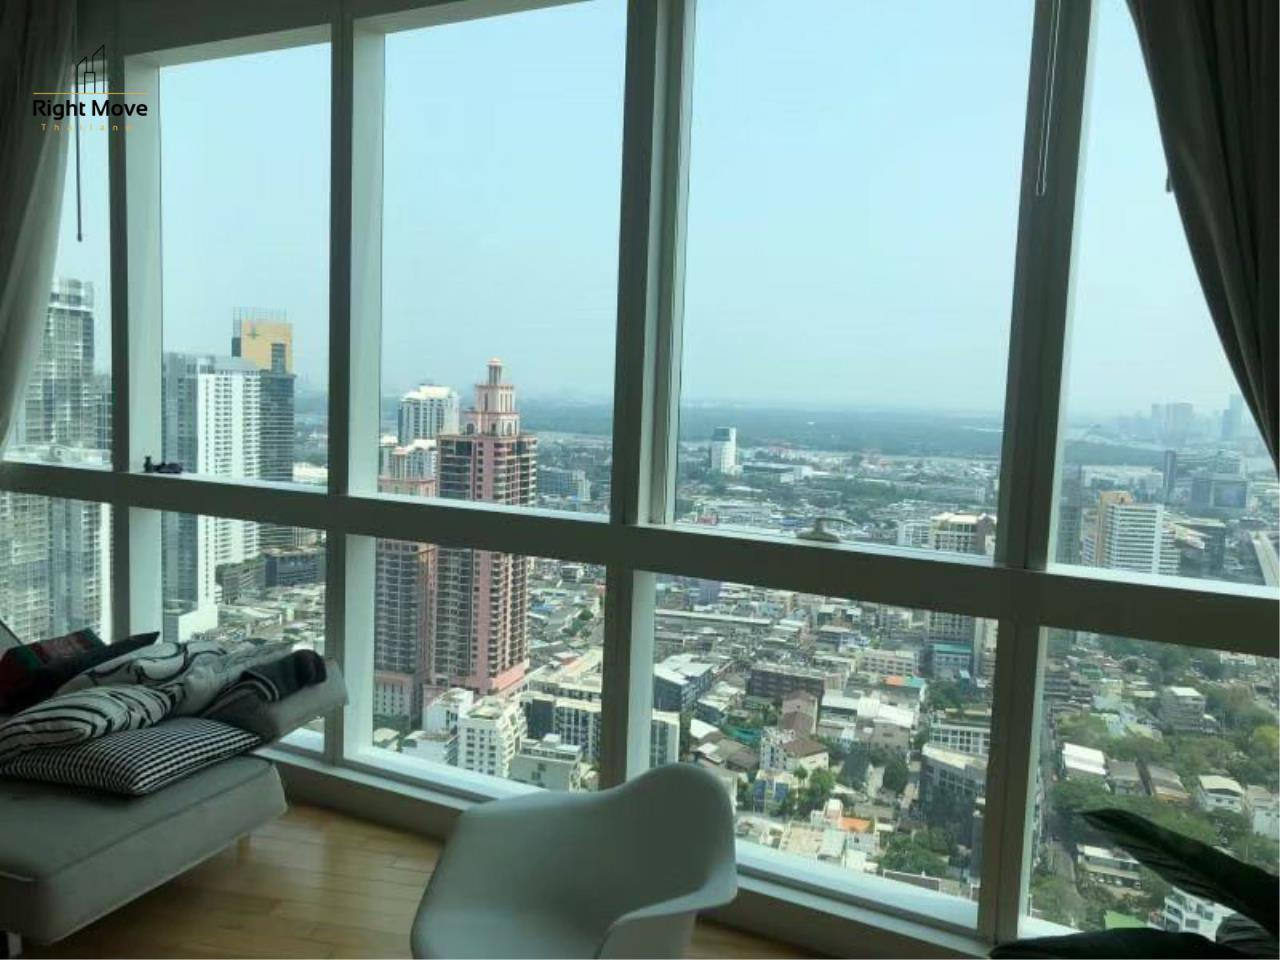 Right Move Thailand Agency's CA4023 Millennium Residence For Rent 120,000 THB -  3 Bedrooms - 193.5 Sqm 3